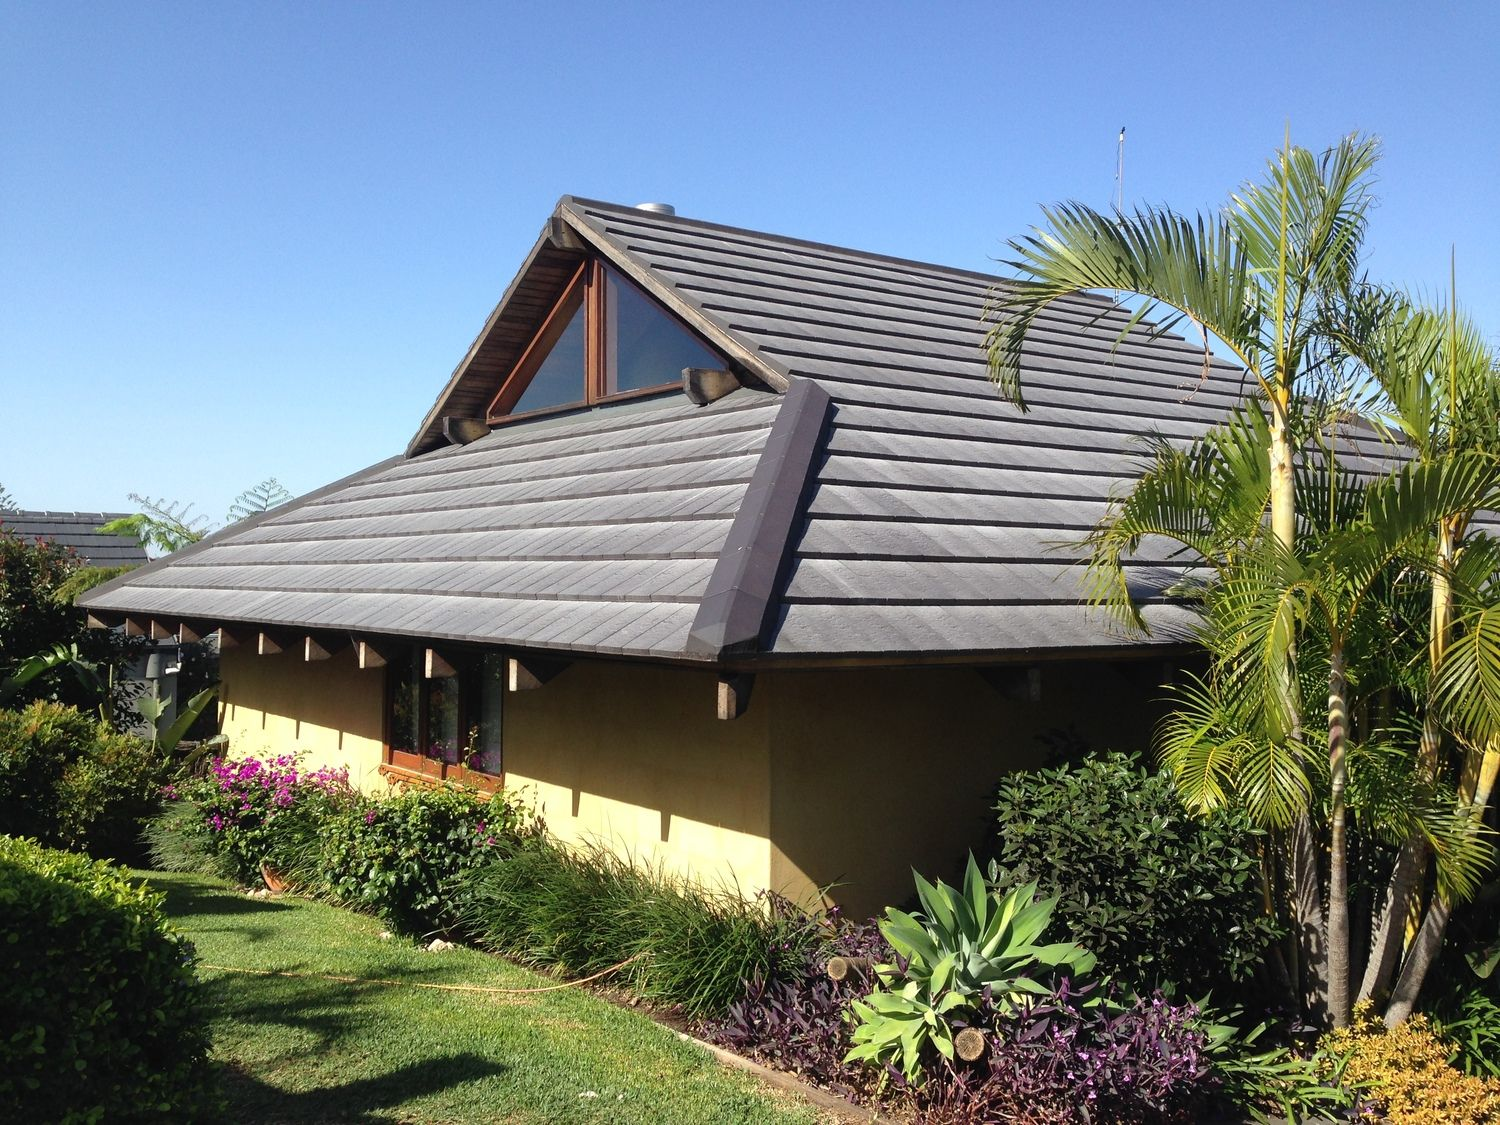 One Part Of The House After Finishing Installation Of Lohas Slate Roof Tiles Terracotta Roof Slate Roof Tiles Roof Tiles